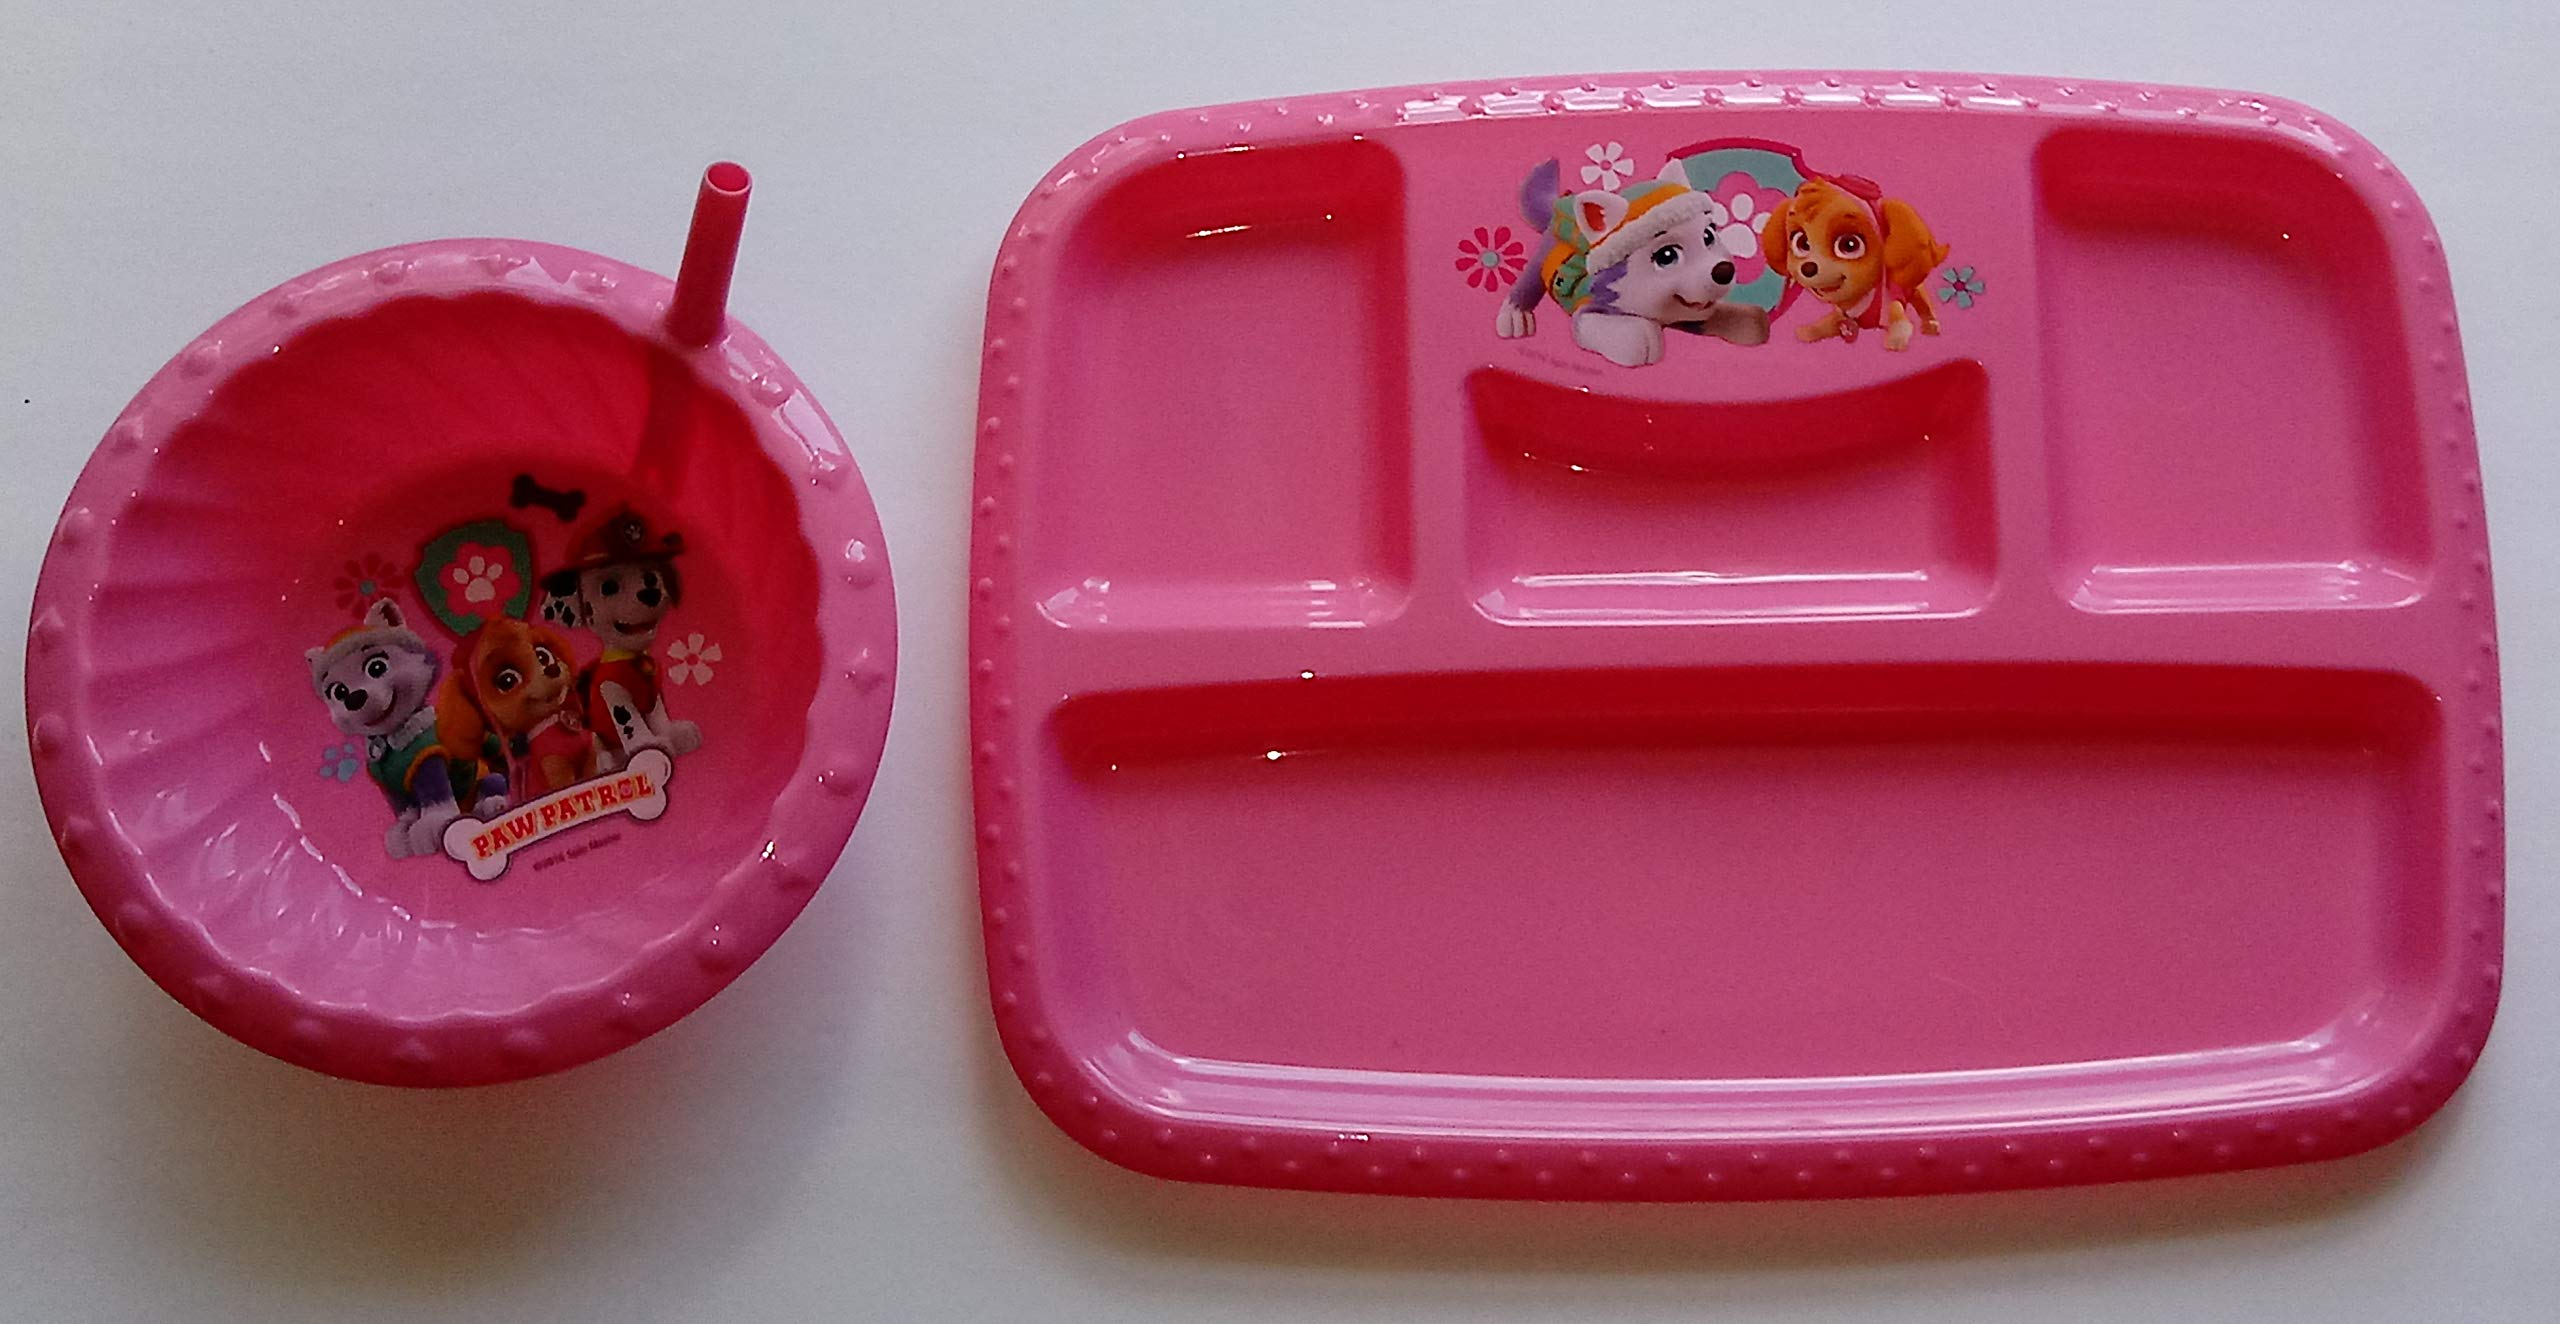 Bundle: 2 pieces: Paw Patrol Divided Meal Tray with Matching Sipper Bowl (pink)